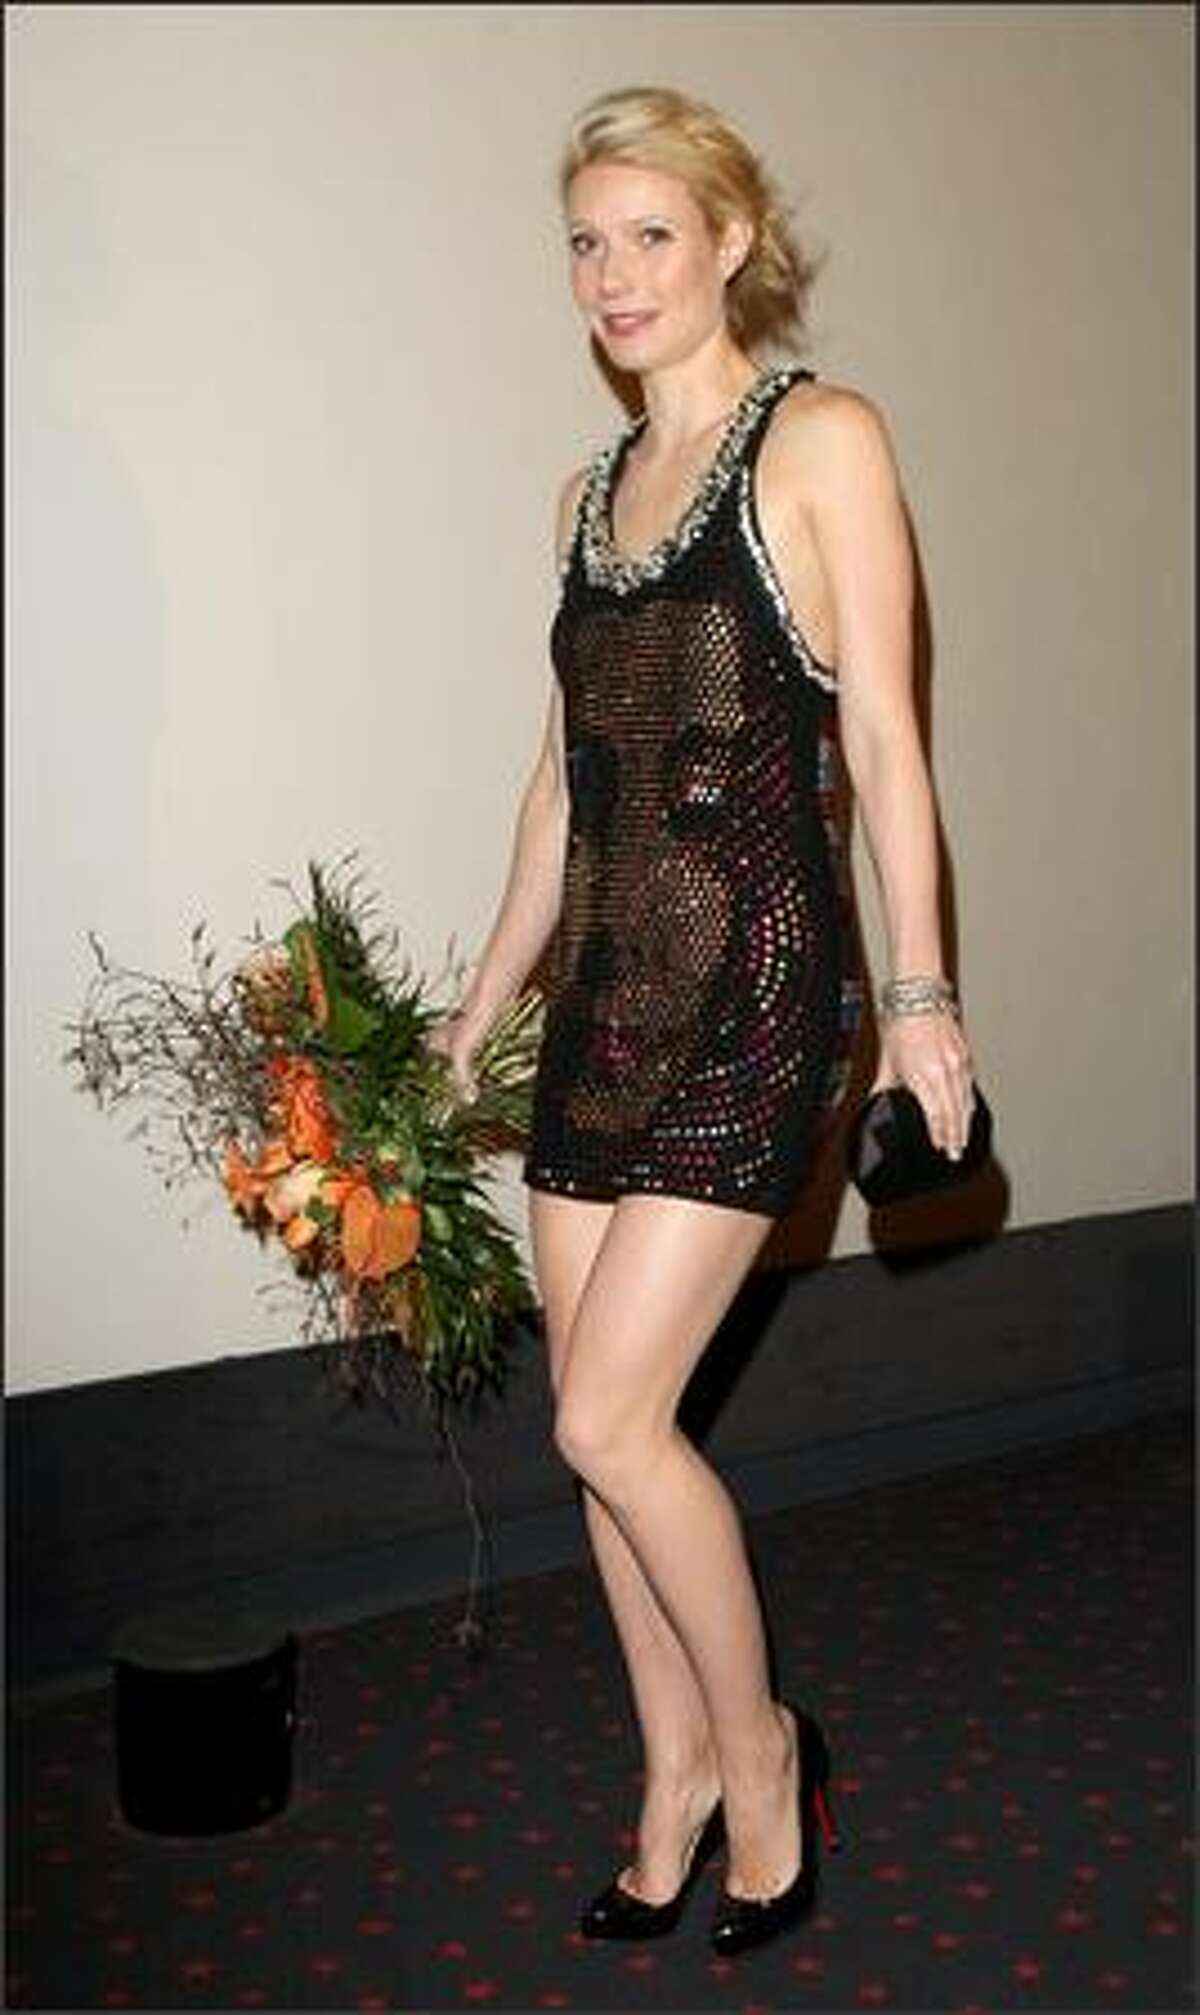 April 22, 2008: Later that same day, Gwyneth Paltrow (in a design by Sonia Rykiel) attends the premiere of the movie